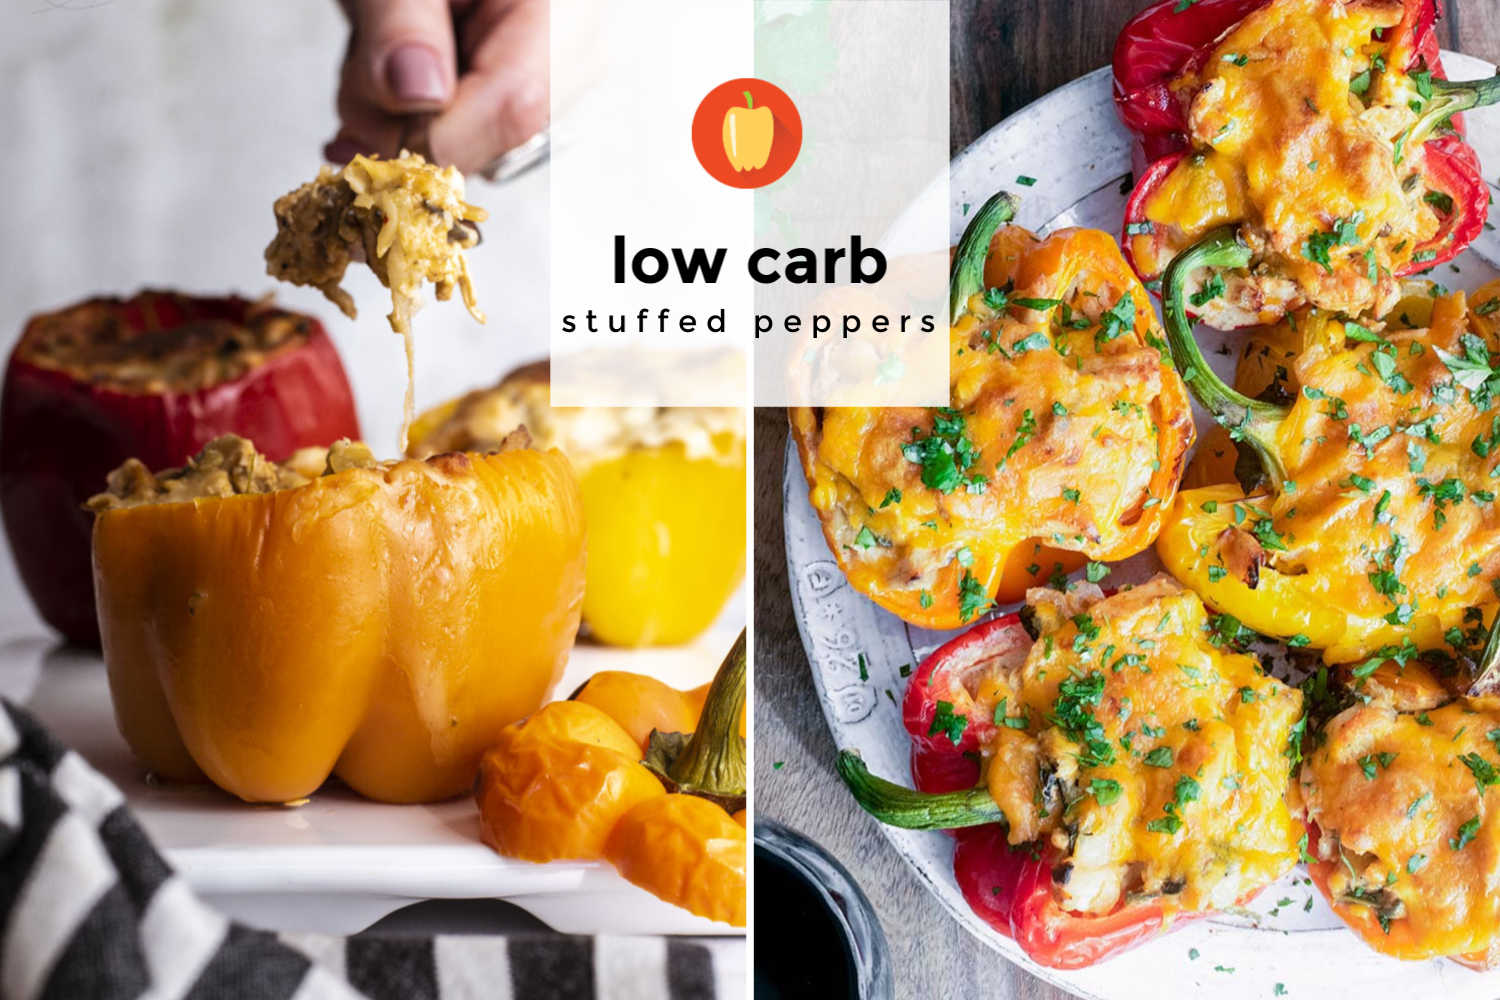 *NEW* Use this massive list of low carb dinners recipes to save time and incorporate a metropolis of scrumptious flavors into your carb conscious meal plan! #lowcarbdinners #ketodinners